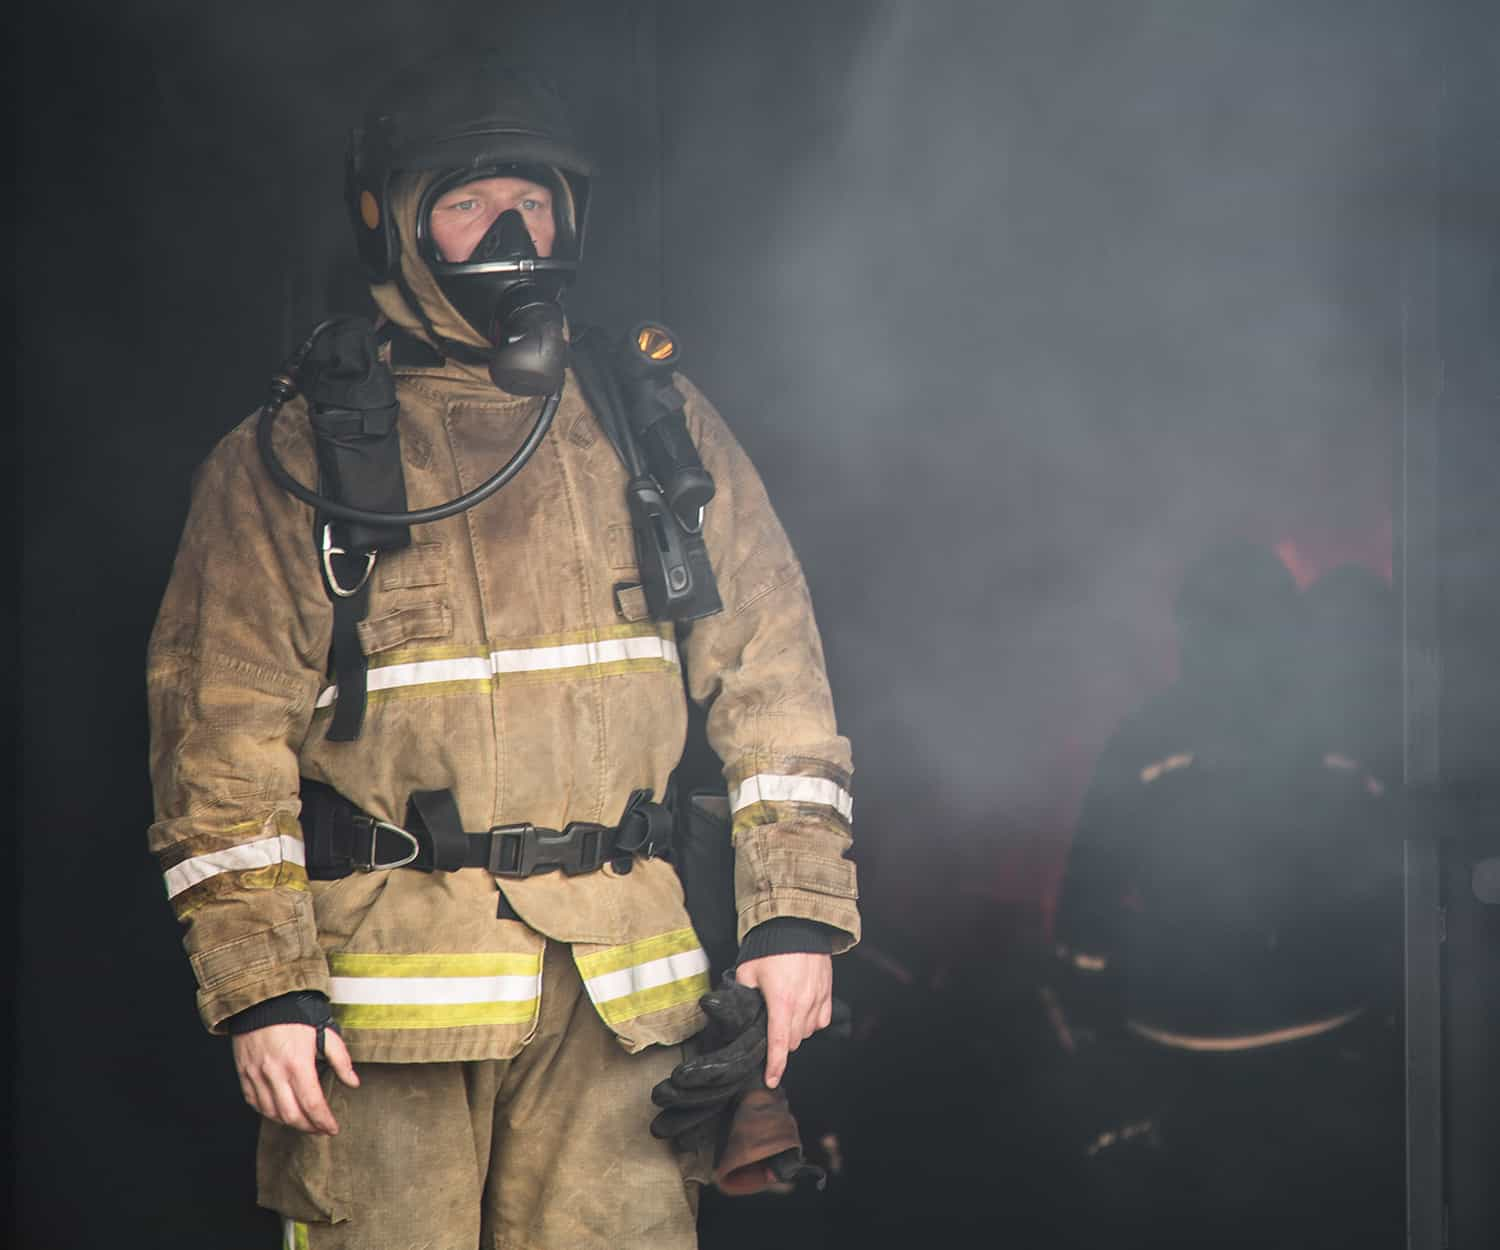 Hampshire Firefighter Close Up Breathing Apparatus